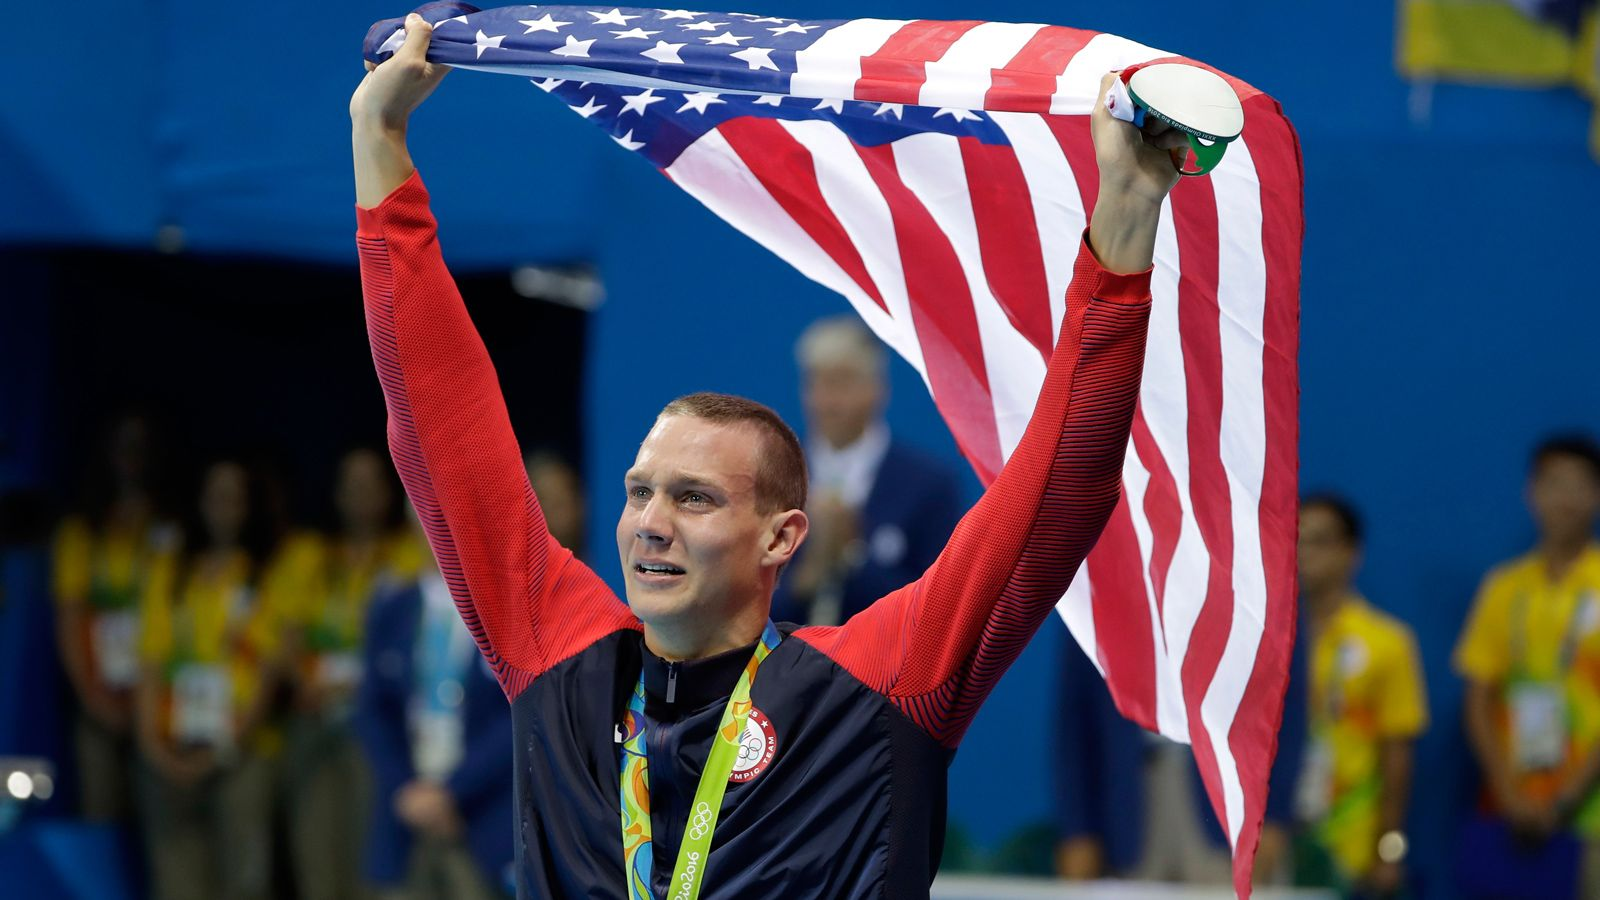 Florida's Caeleb Dressel captures gold medal